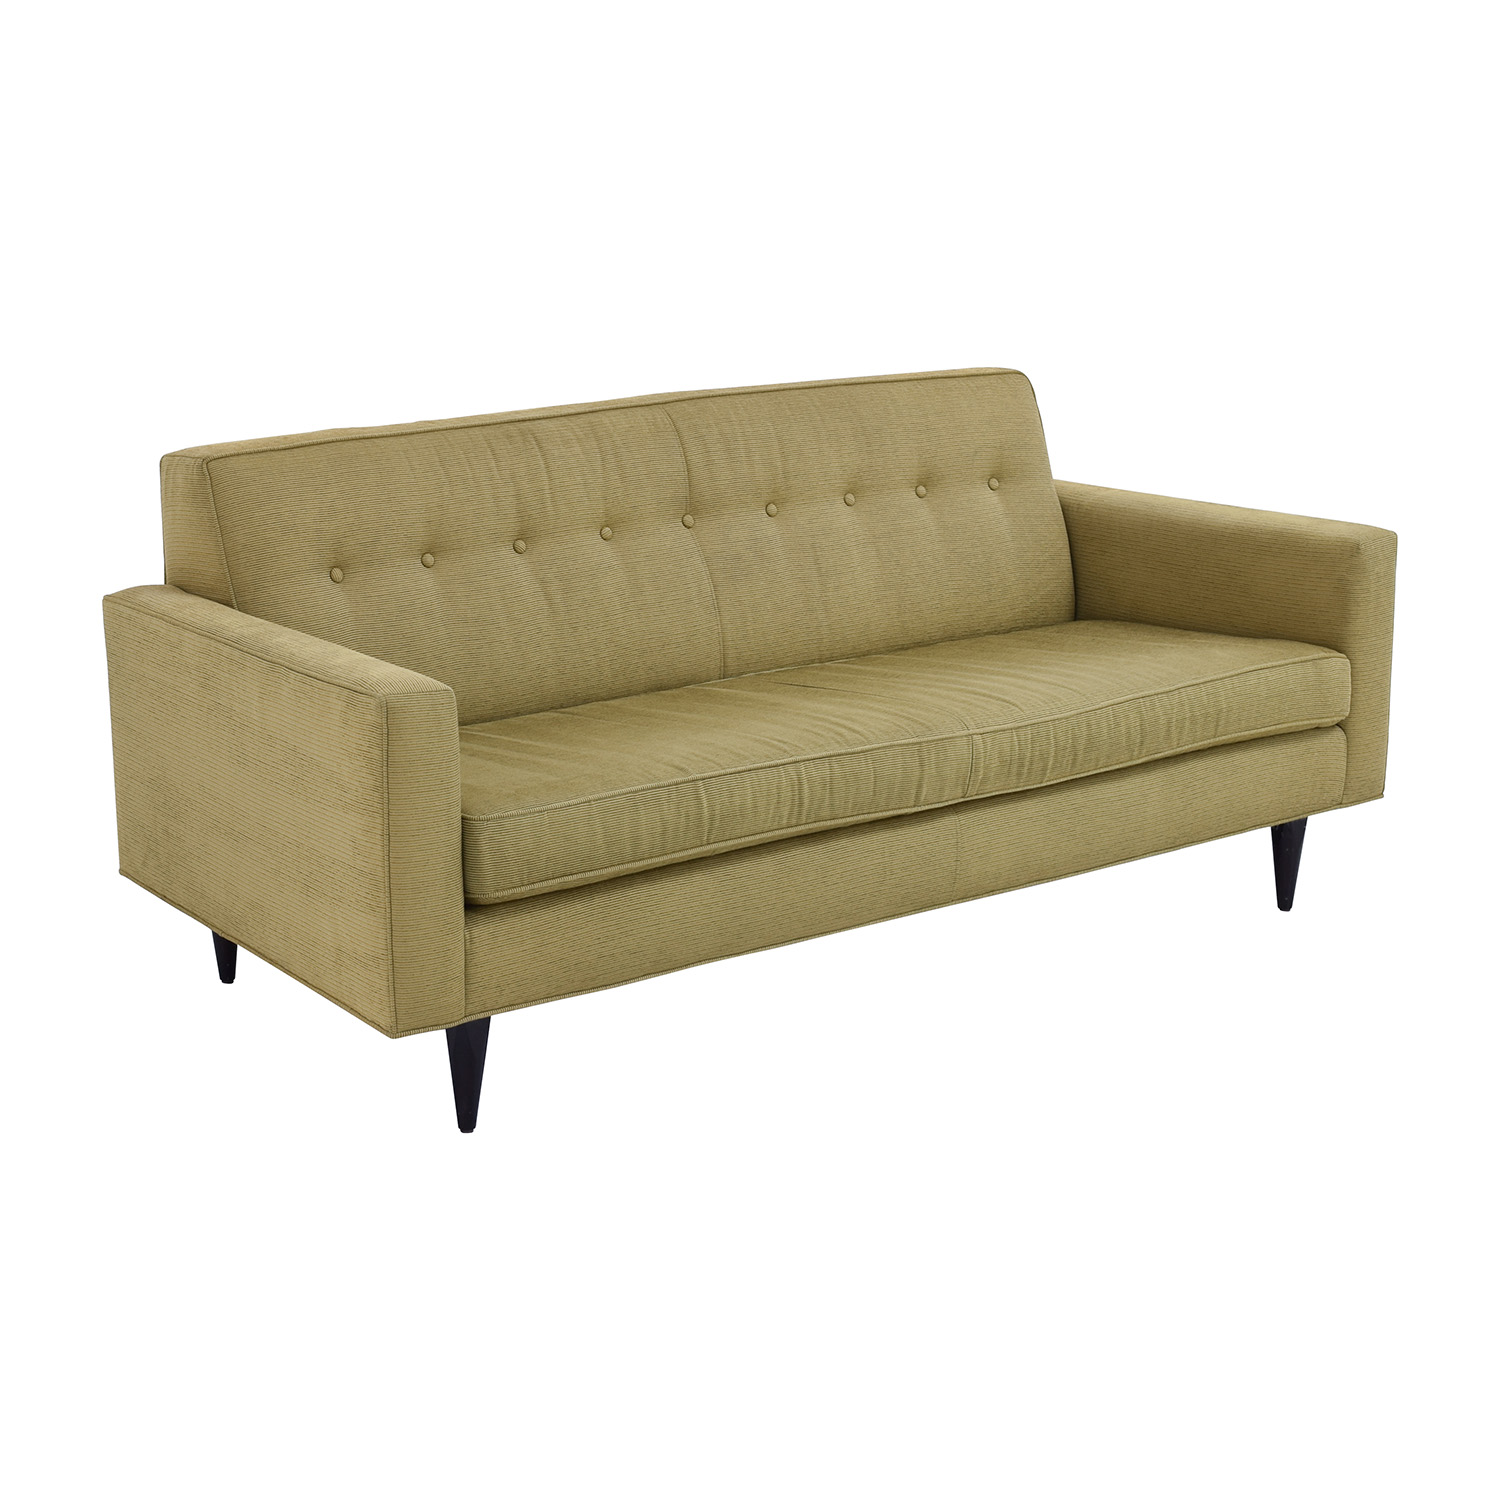 59 Off Design Within Reach Design Within Reach Bantam Tufted